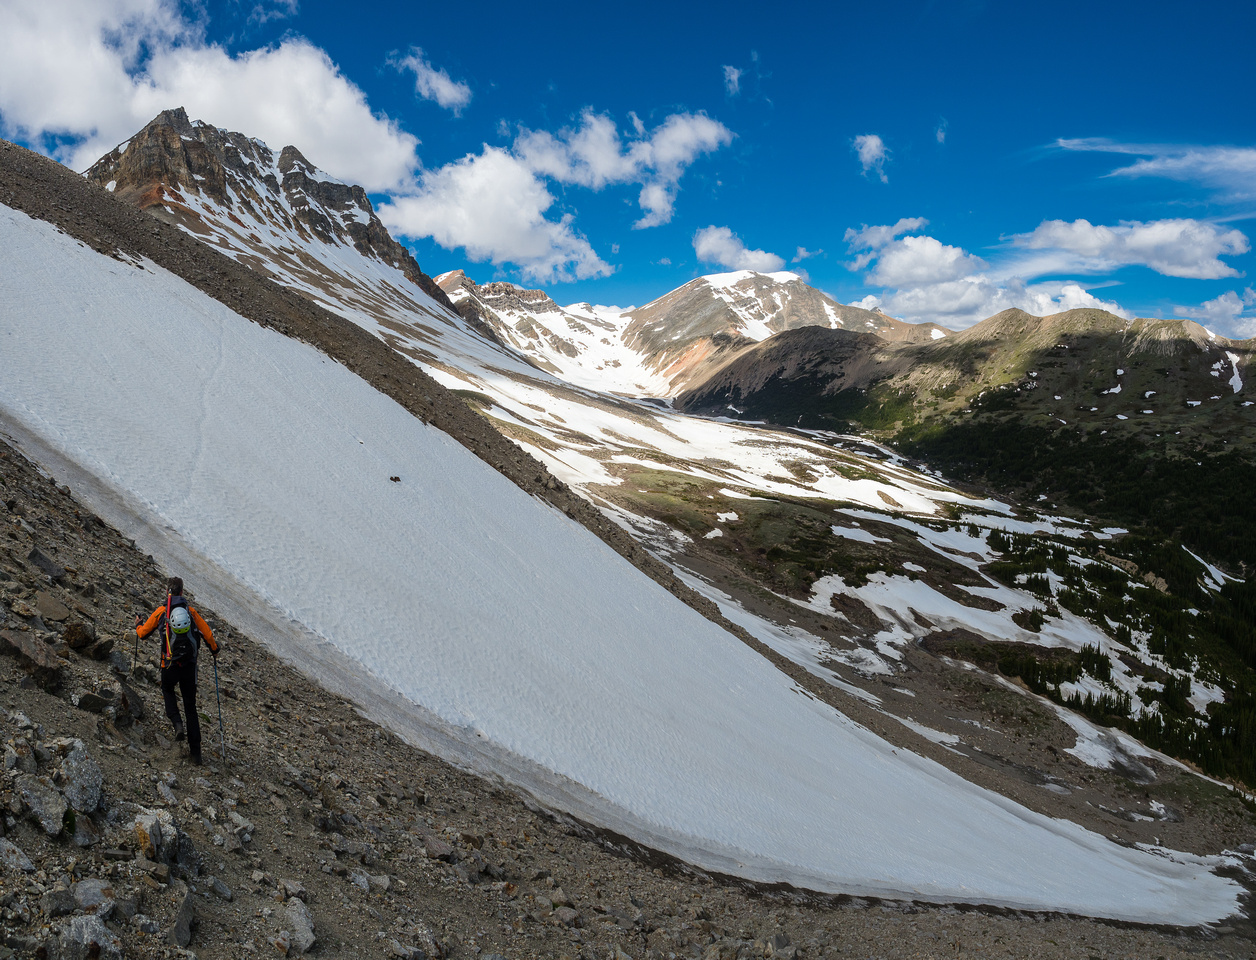 The first snow patch has an 'interesting' runout. :) The snow was soft enough that we kicked steps safely across it.